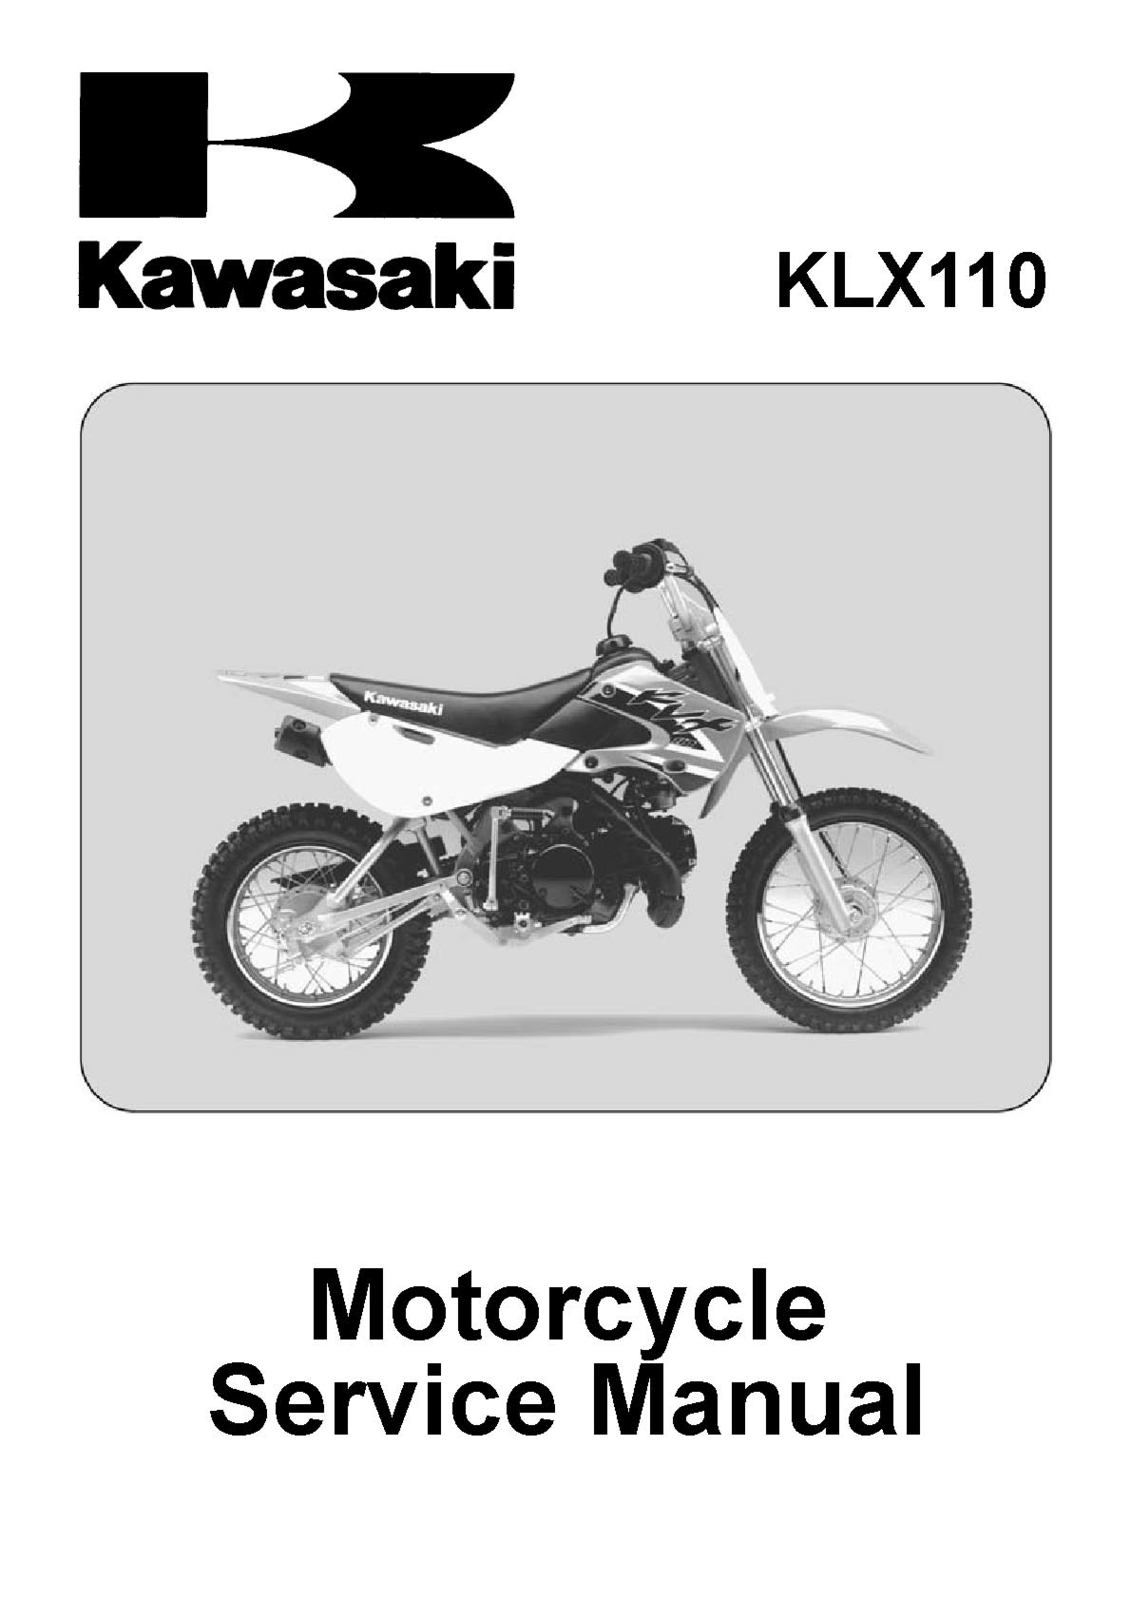 Kawasaki KLX110 KLX 110 Shop Service Repair and 44 similar items. Klx110